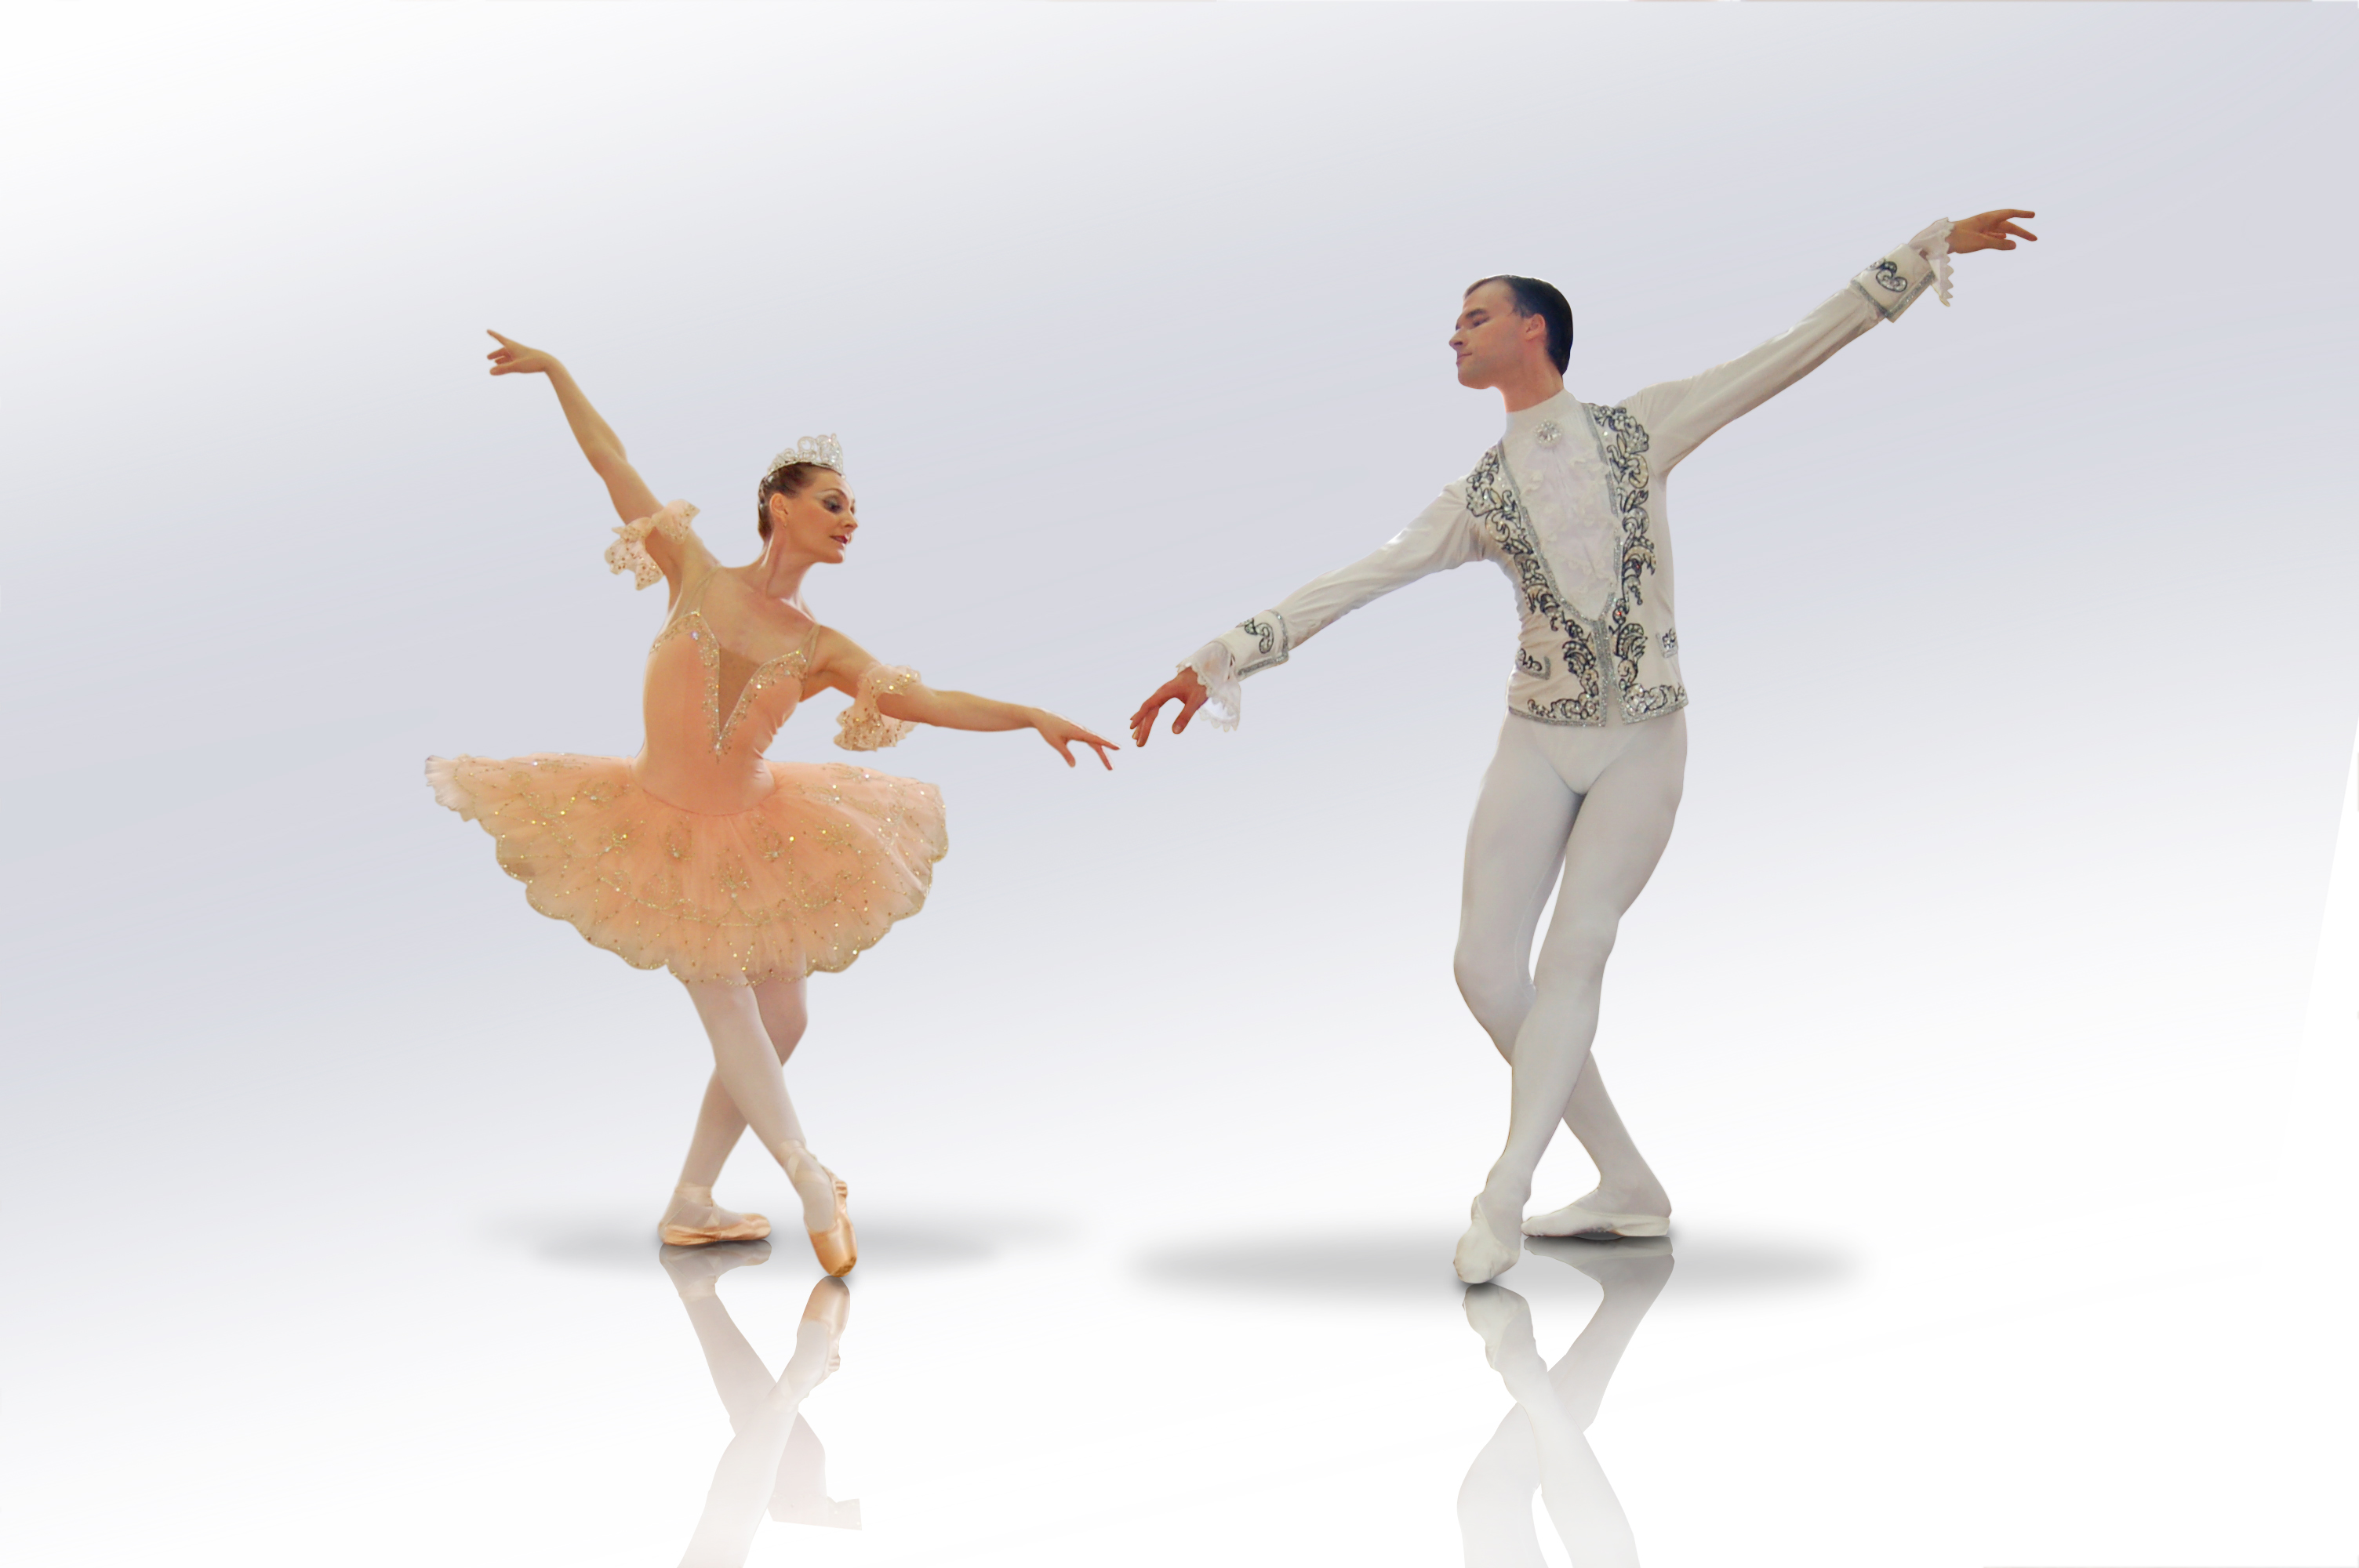 w22-glive-nutcracker-natalia-romanova-and-petr-borchenko